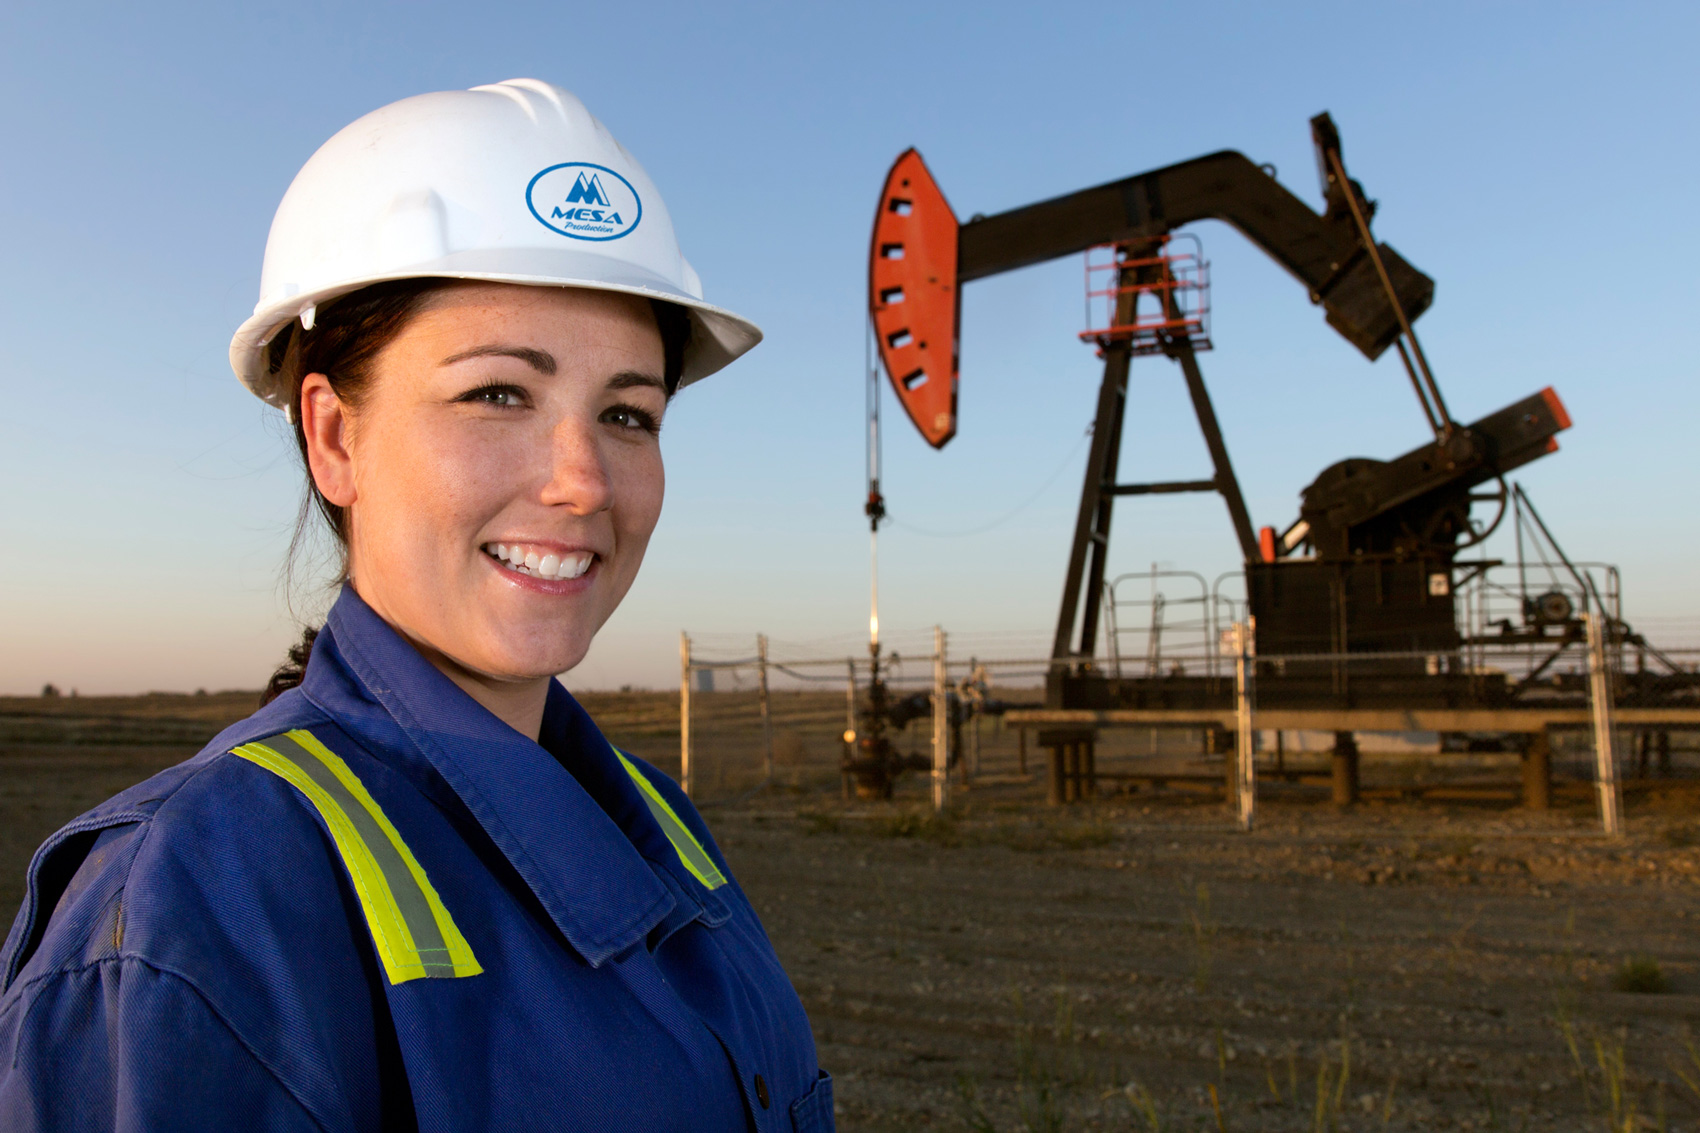 Oil and gas services - Flowback services - Frac Support Services